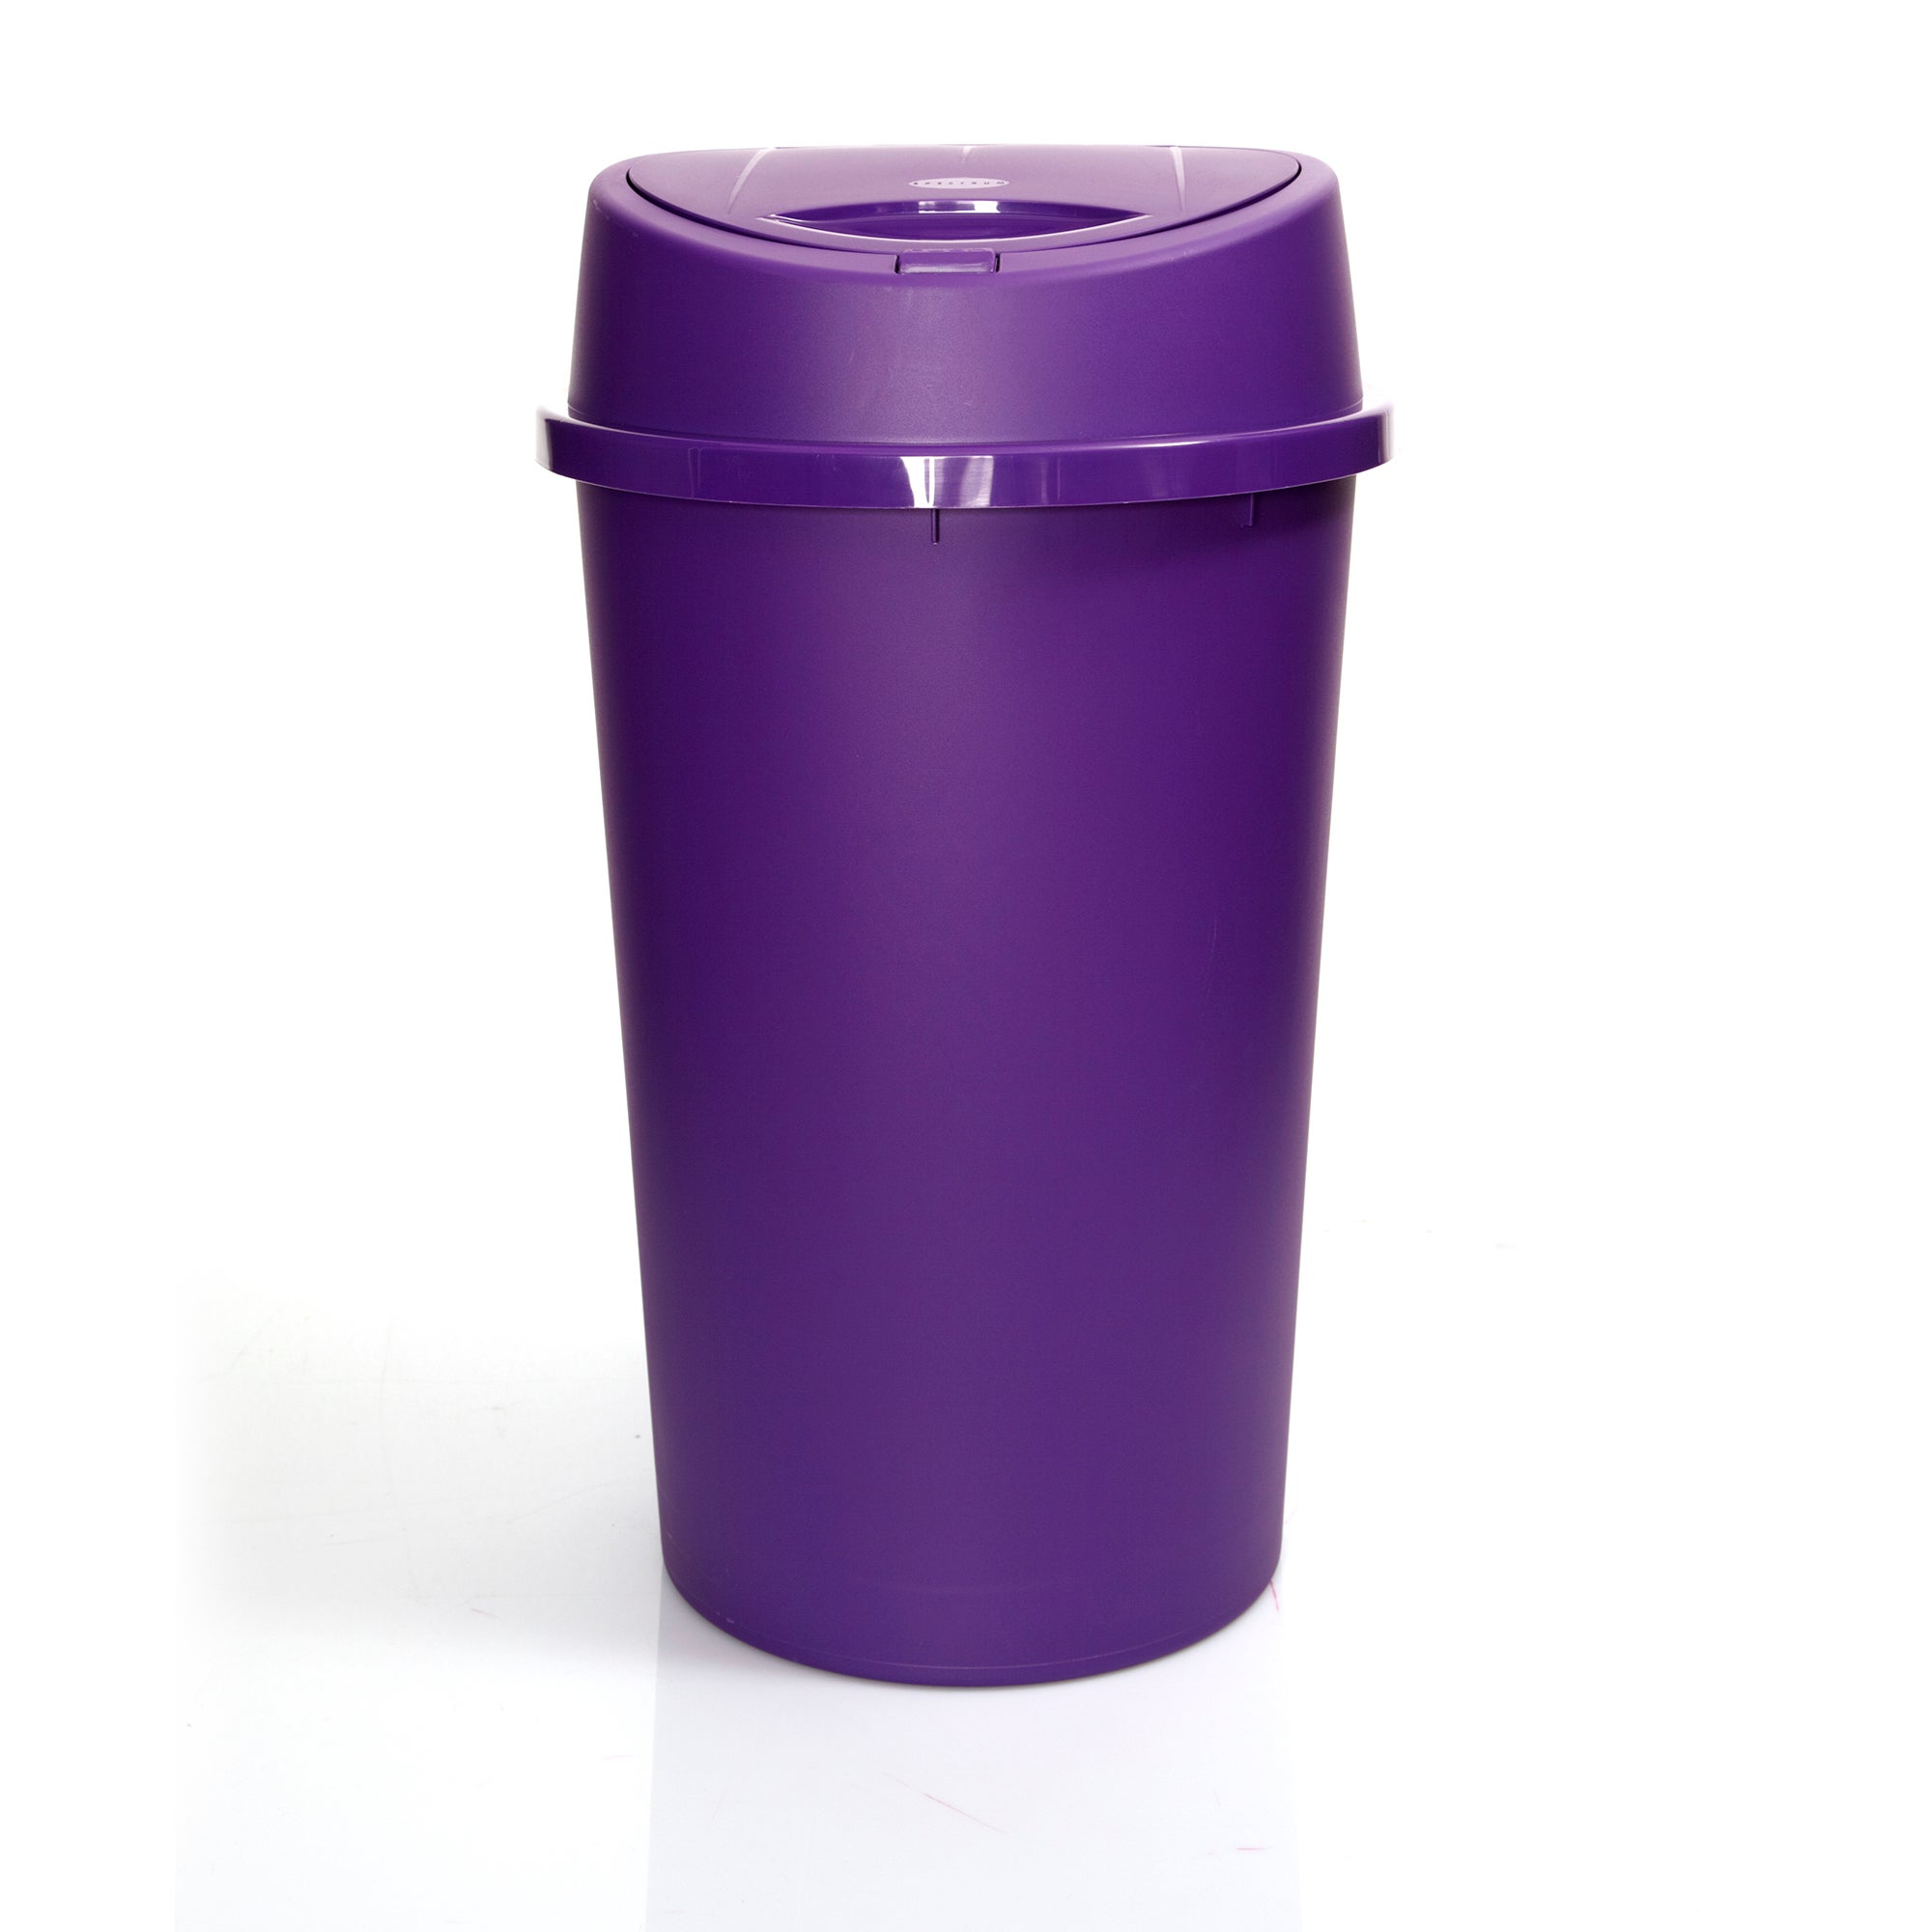 Purple Spectrum Collection 45 Litre Touch Bin